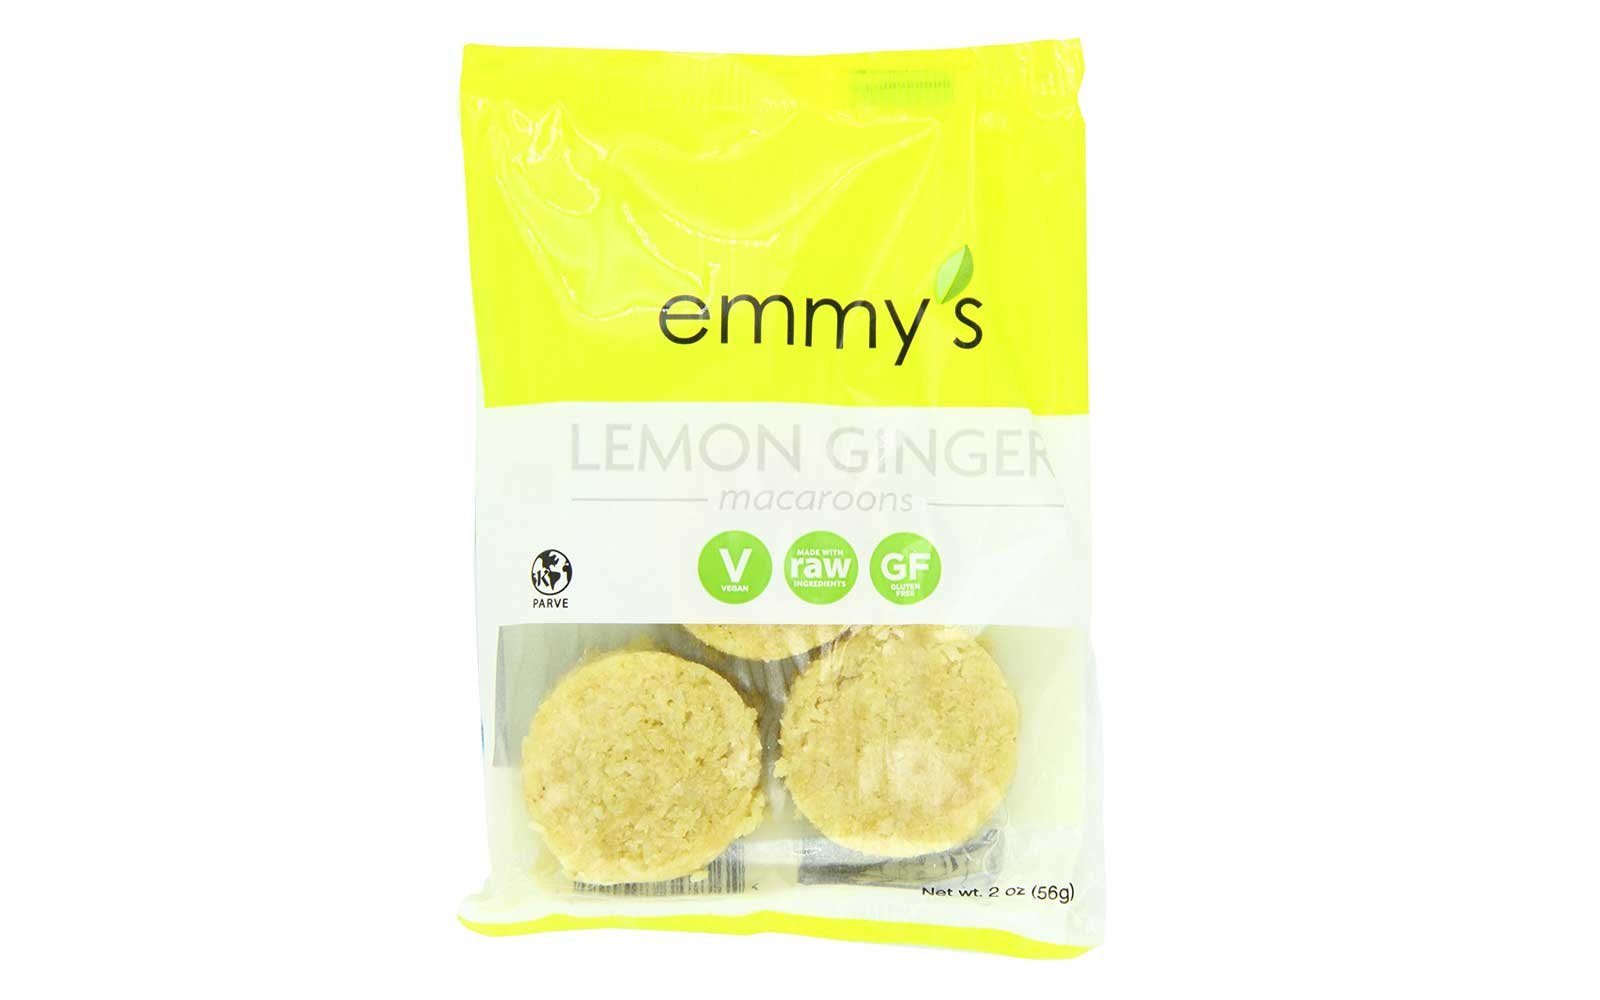 Emmy's 2 oz. Lemon Ginger Macaroons